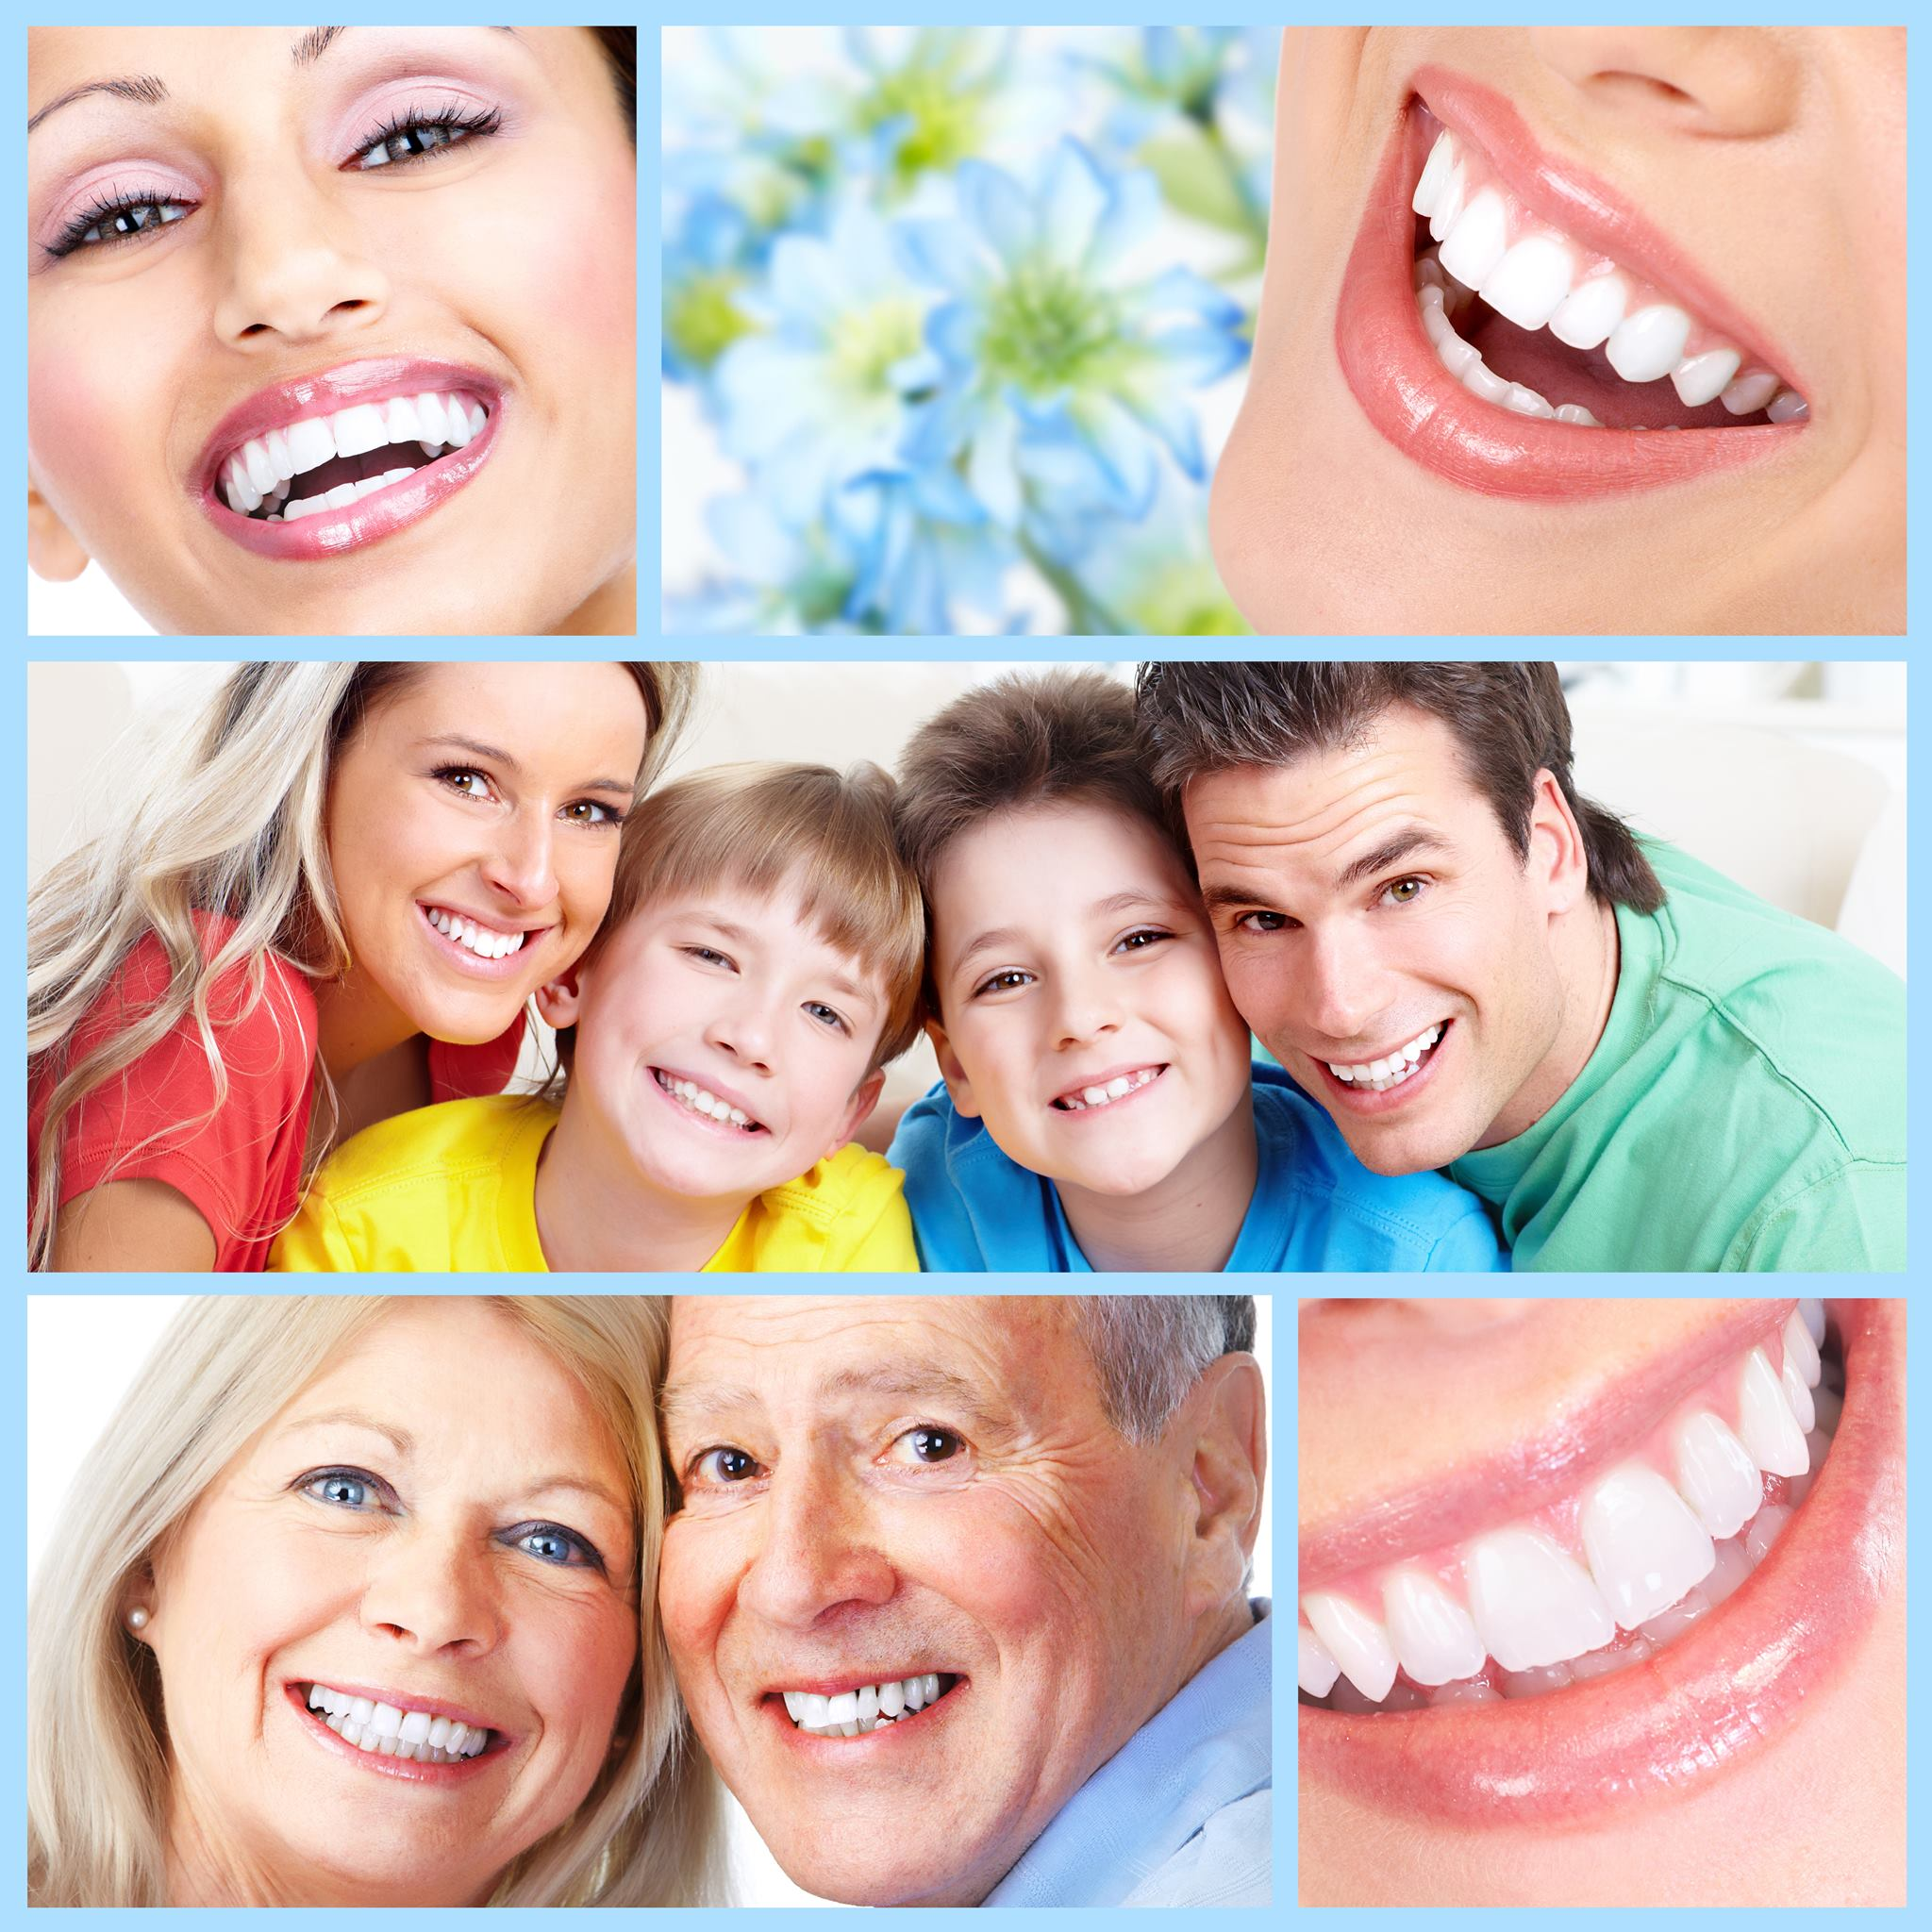 Dental Care for Your Family